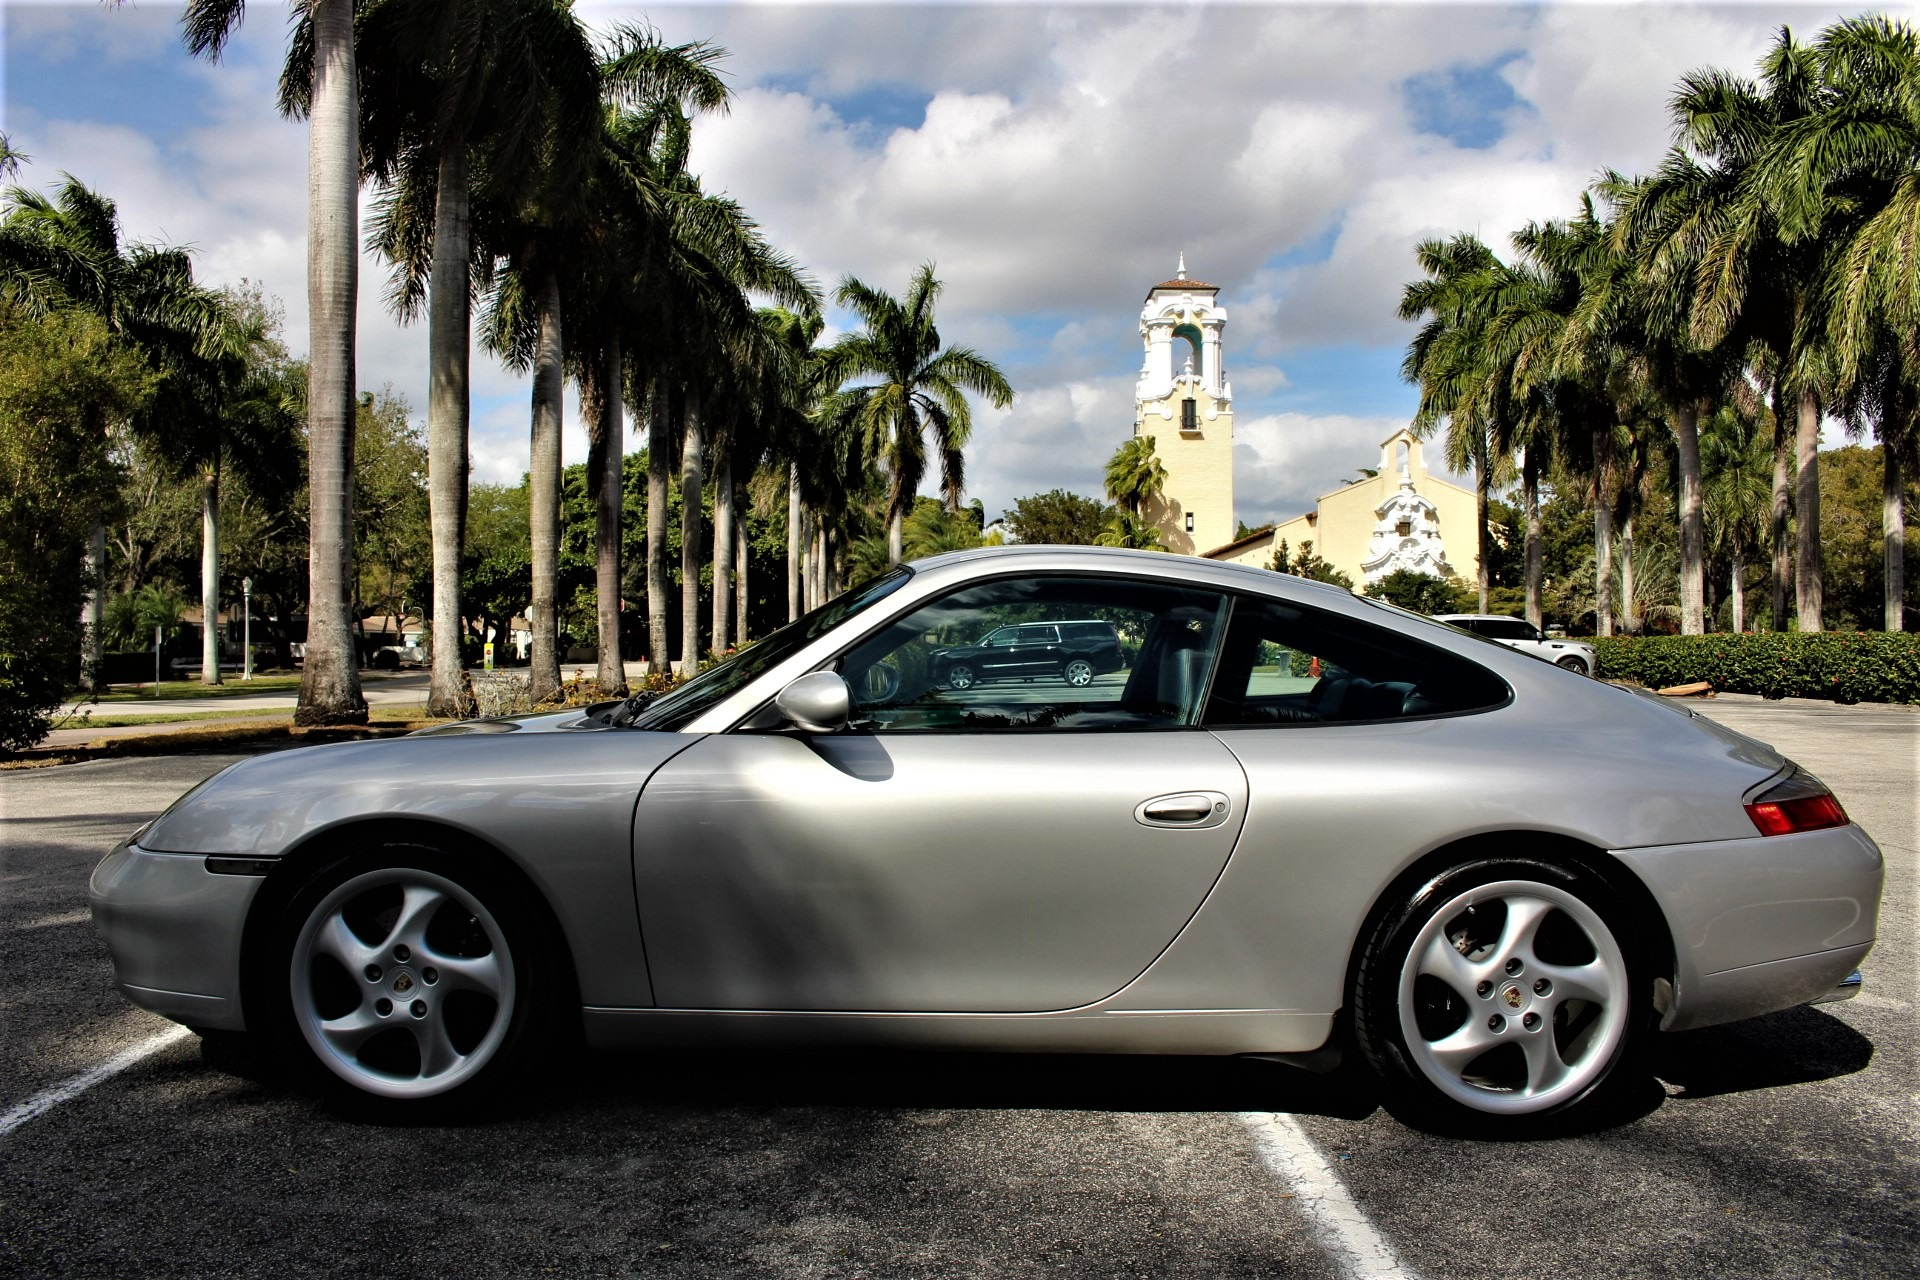 Used 2000 Porsche 911 Carrera for sale Sold at The Gables Sports Cars in Miami FL 33146 3